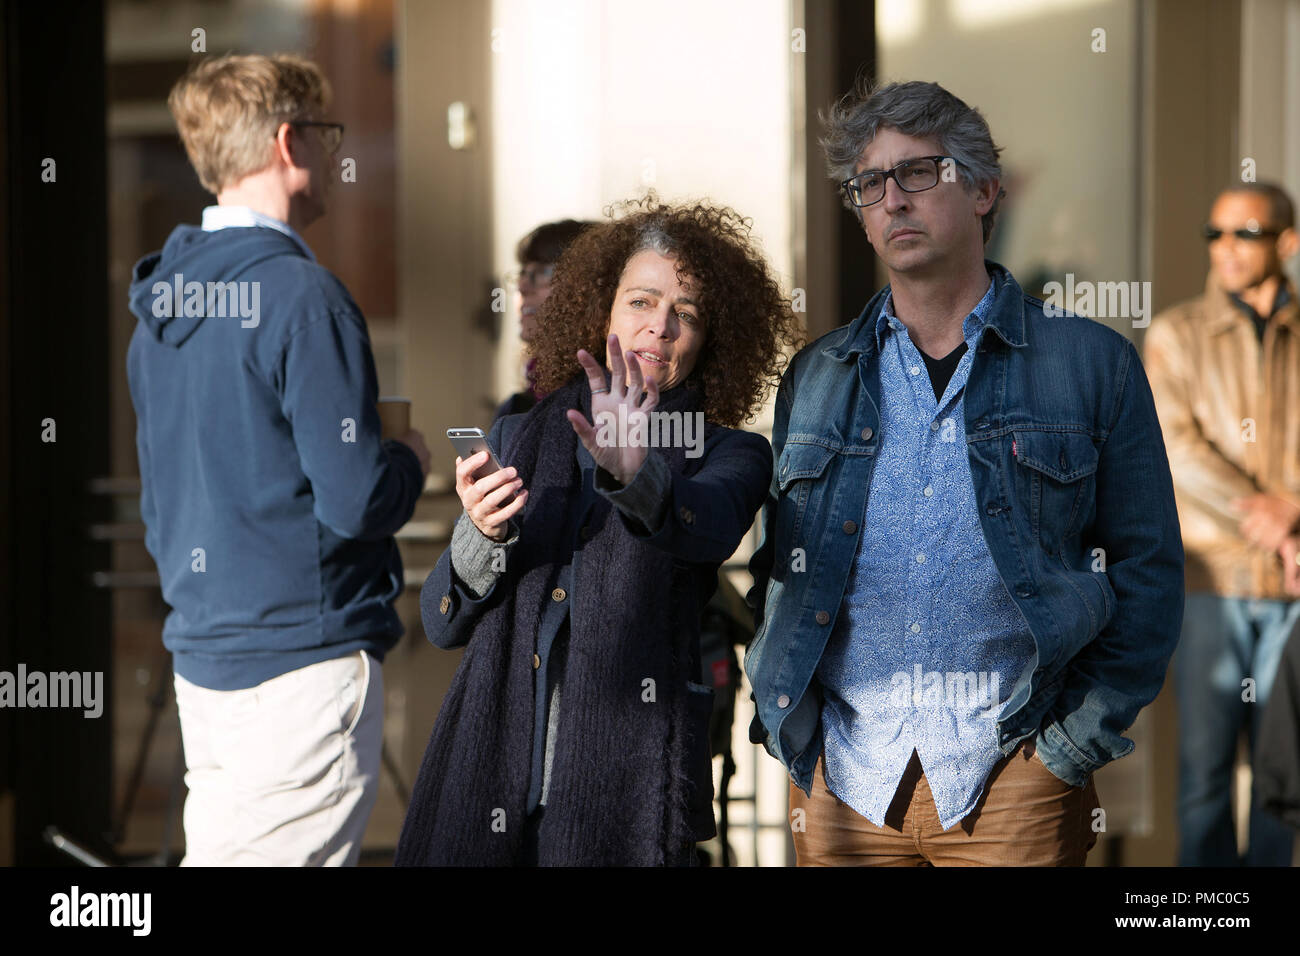 Director Alexander Payne and Production Designer Stefania Cella on the set of Downsizing from Paramount Pictures. (2017) - Stock Image